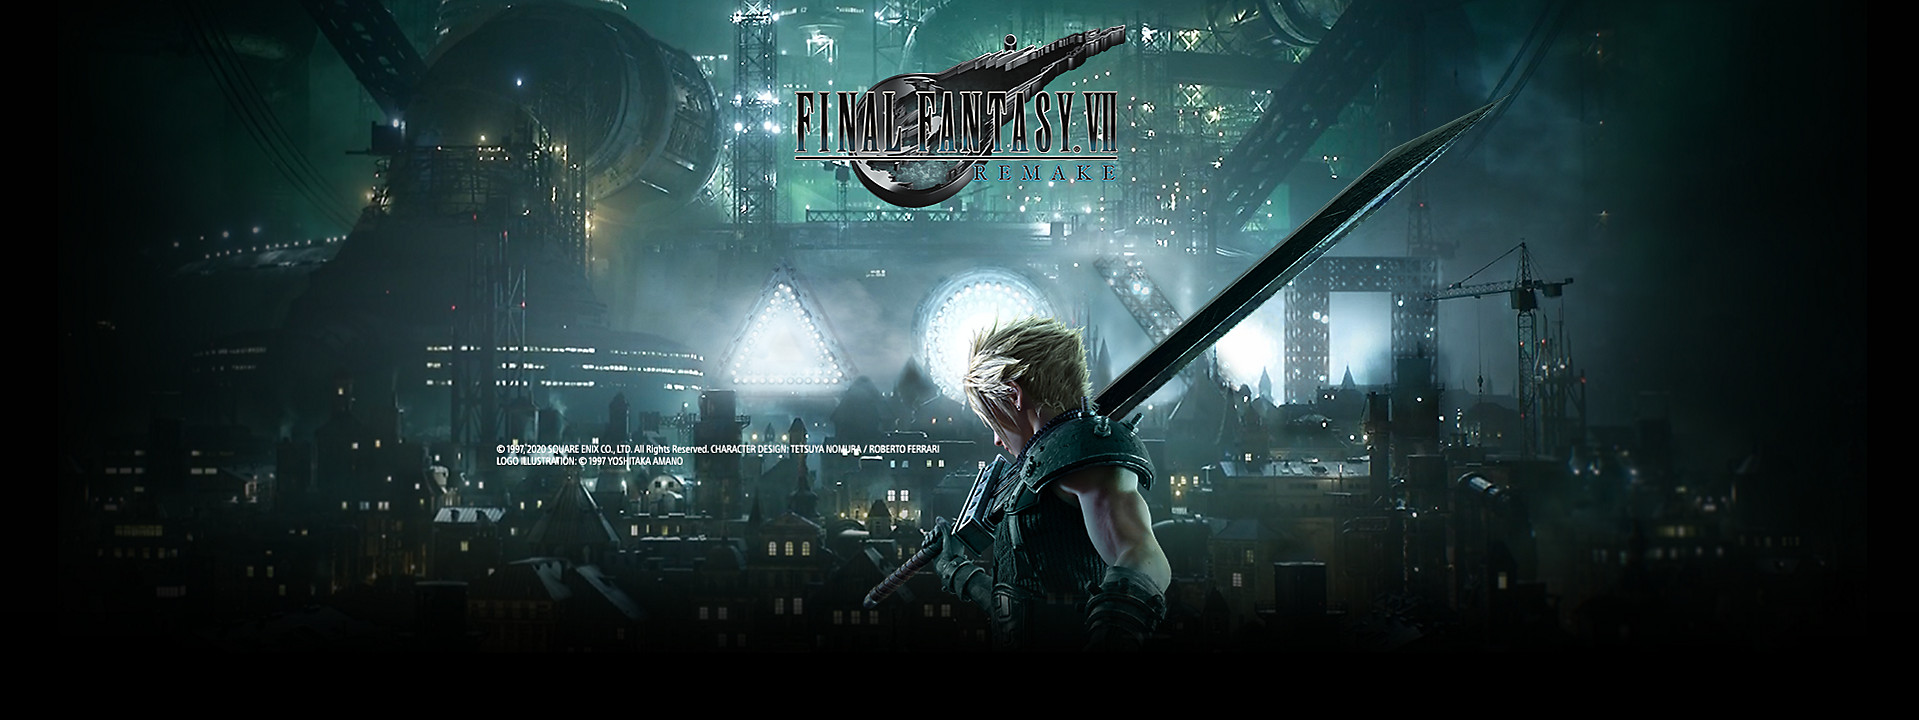 https://media.playstation.com/is/image/SCEA/final-fantasy-vii-remake-homepage-marquee-desktop-02-ps4-30mar20?$native_xxl_nt$